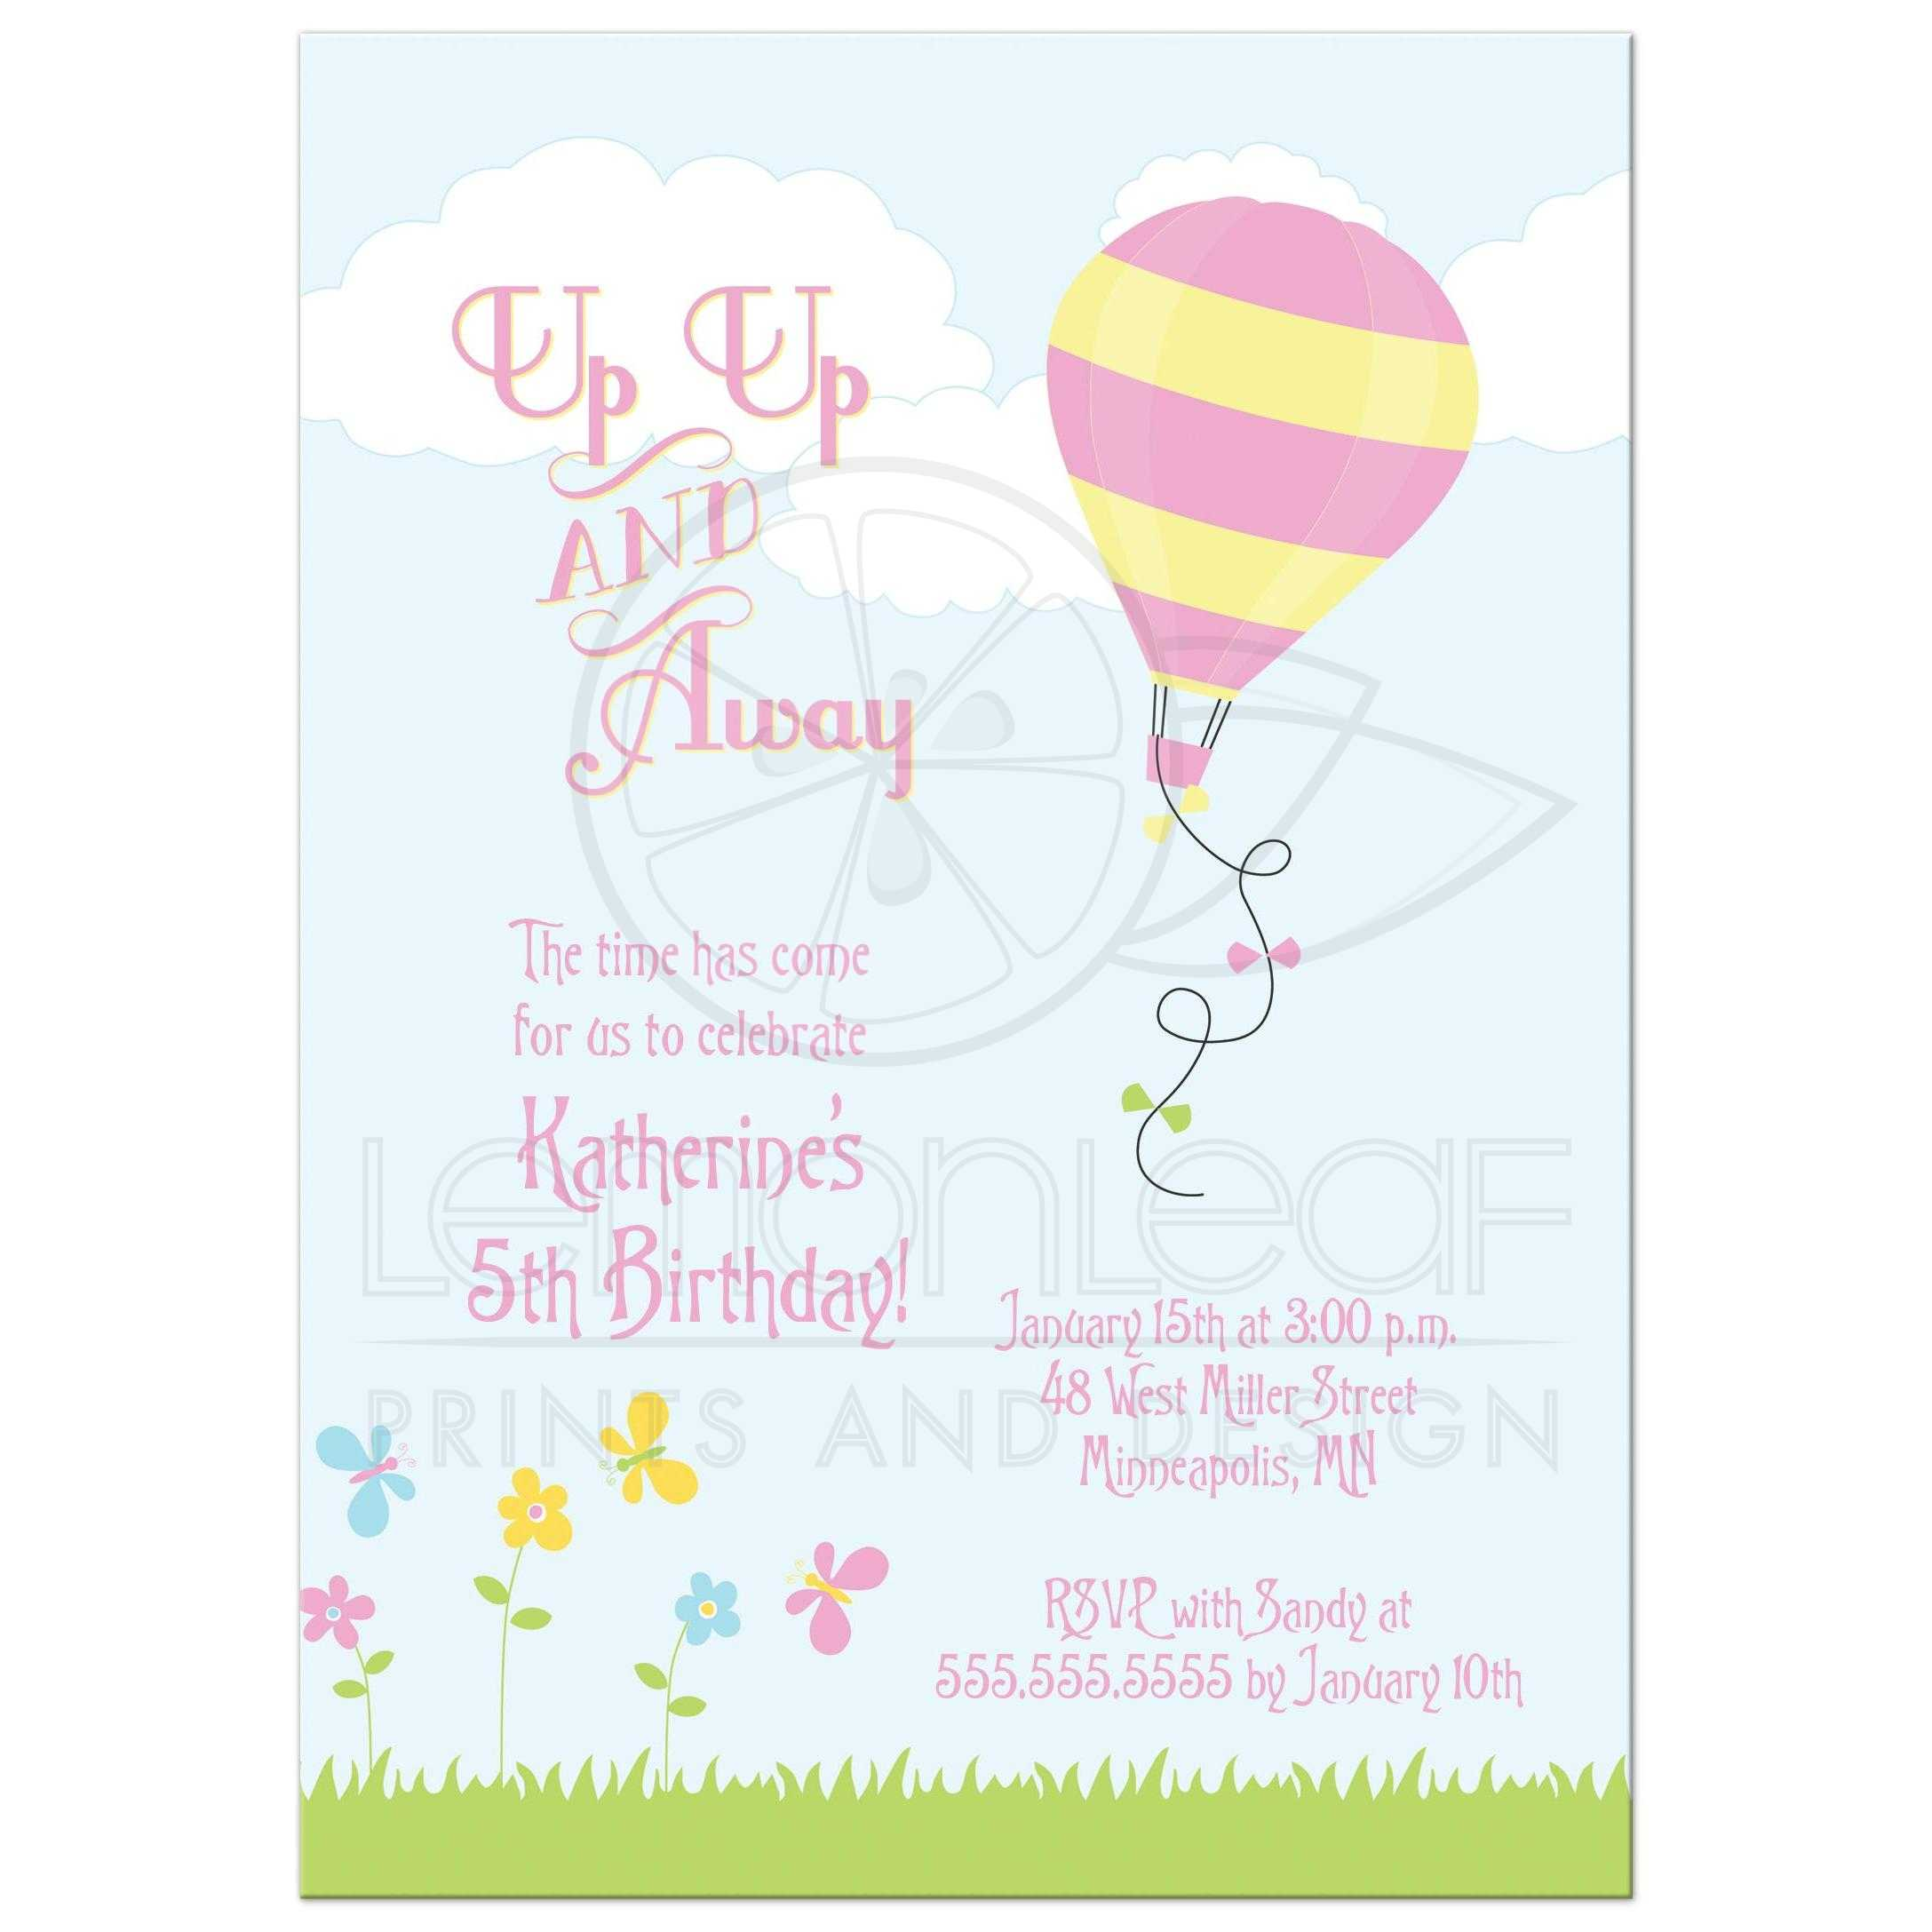 Hot Air Balloon S Birthday Party Invitation